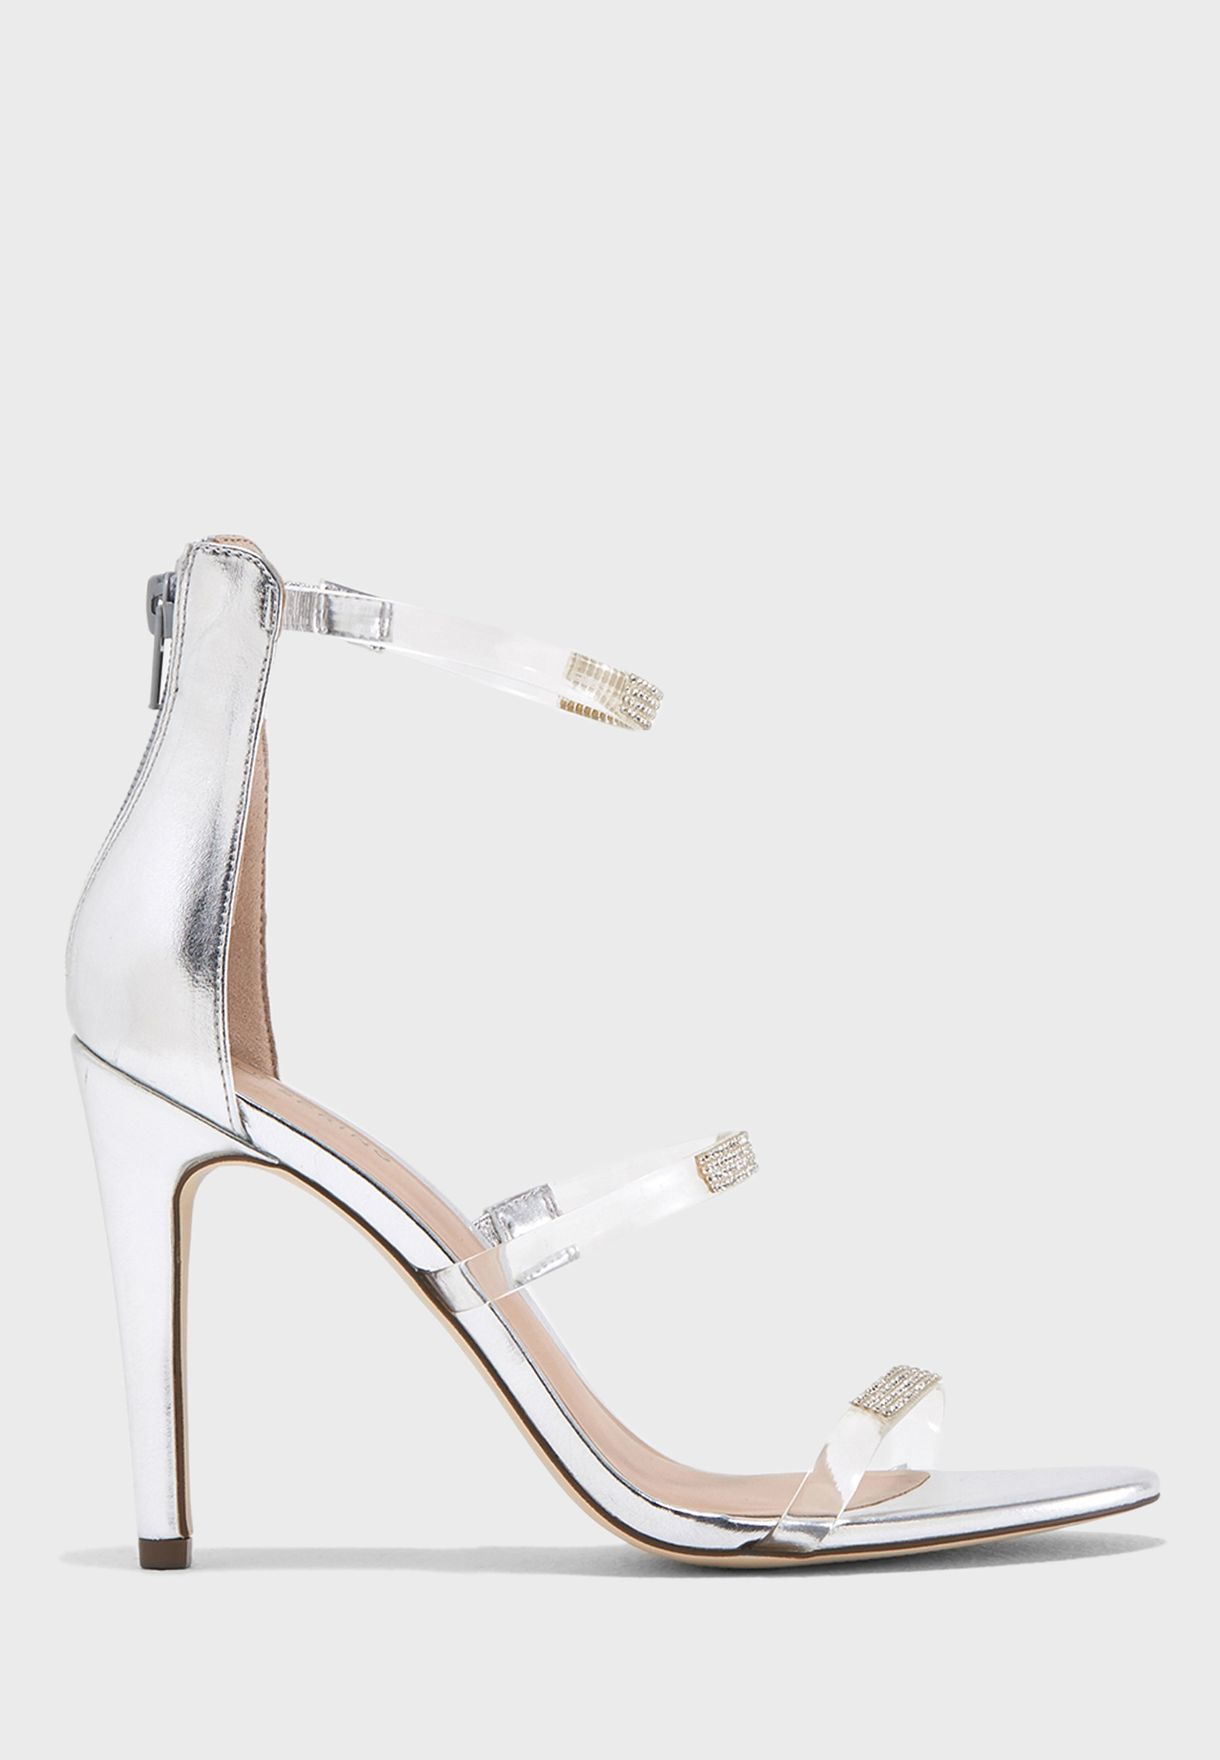 ca983e018 Shop Call It Spring silver Duni Block Heeled Sandals DUNI40 for ...